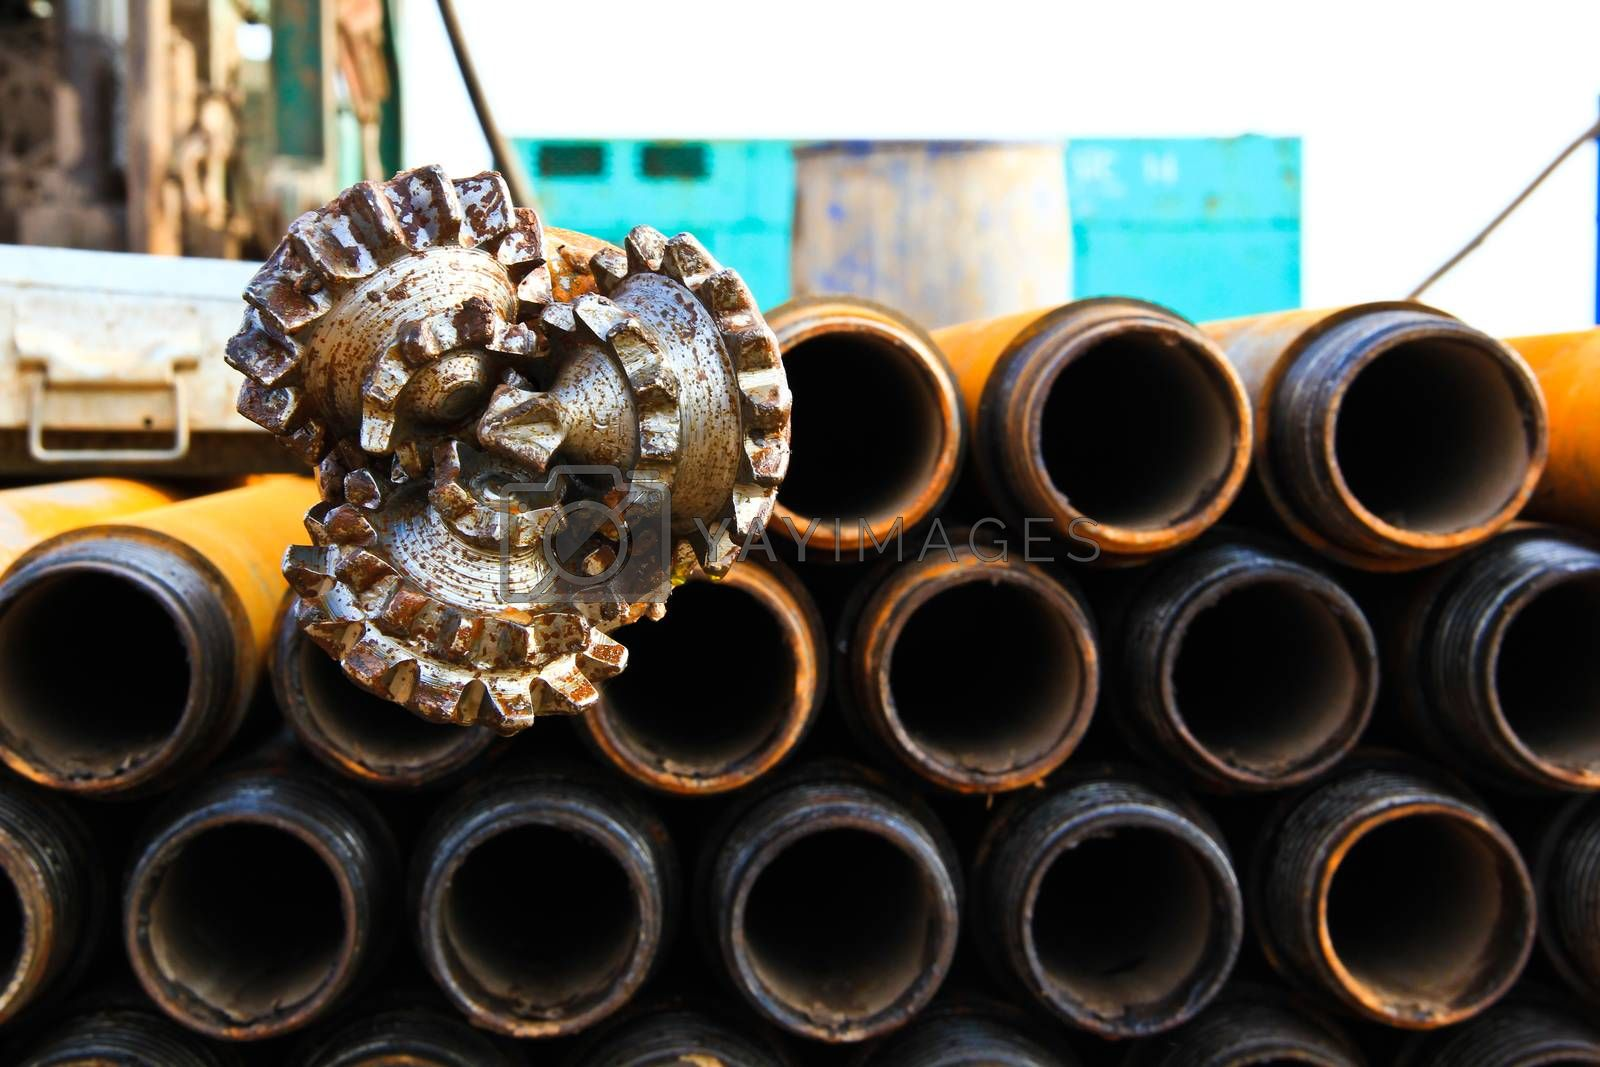 Royalty free image of oil rig drill bit with drilling pipe by nitimongkolchai